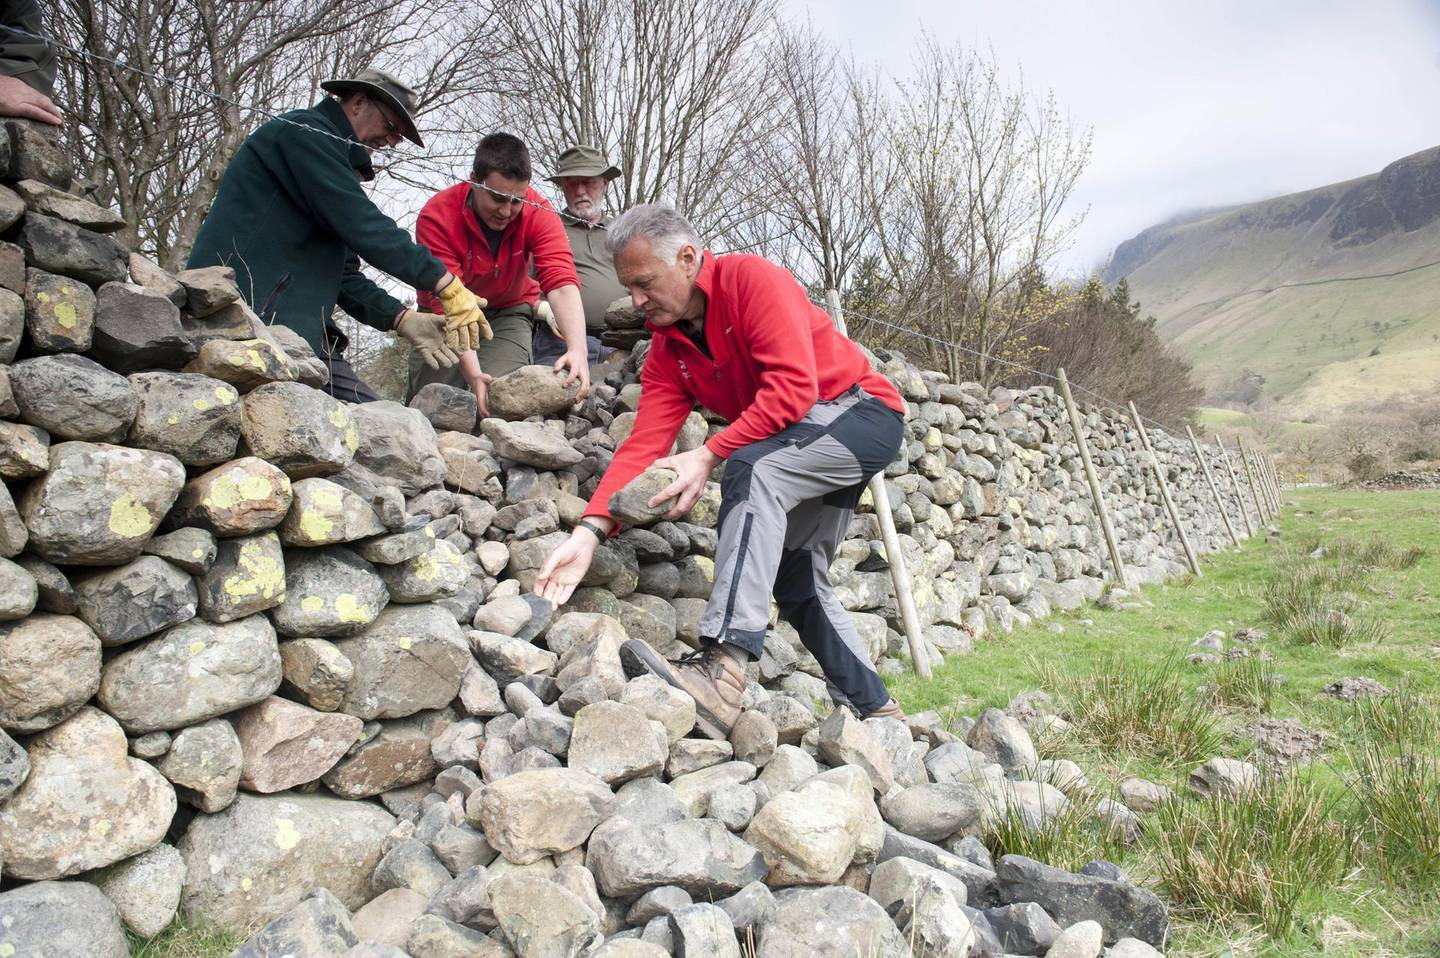 National Trust Wardens and Volunteers maintaining dry stone walls around the campsite in Wasdale, Cumbria. Paul Harris / National Trust Images